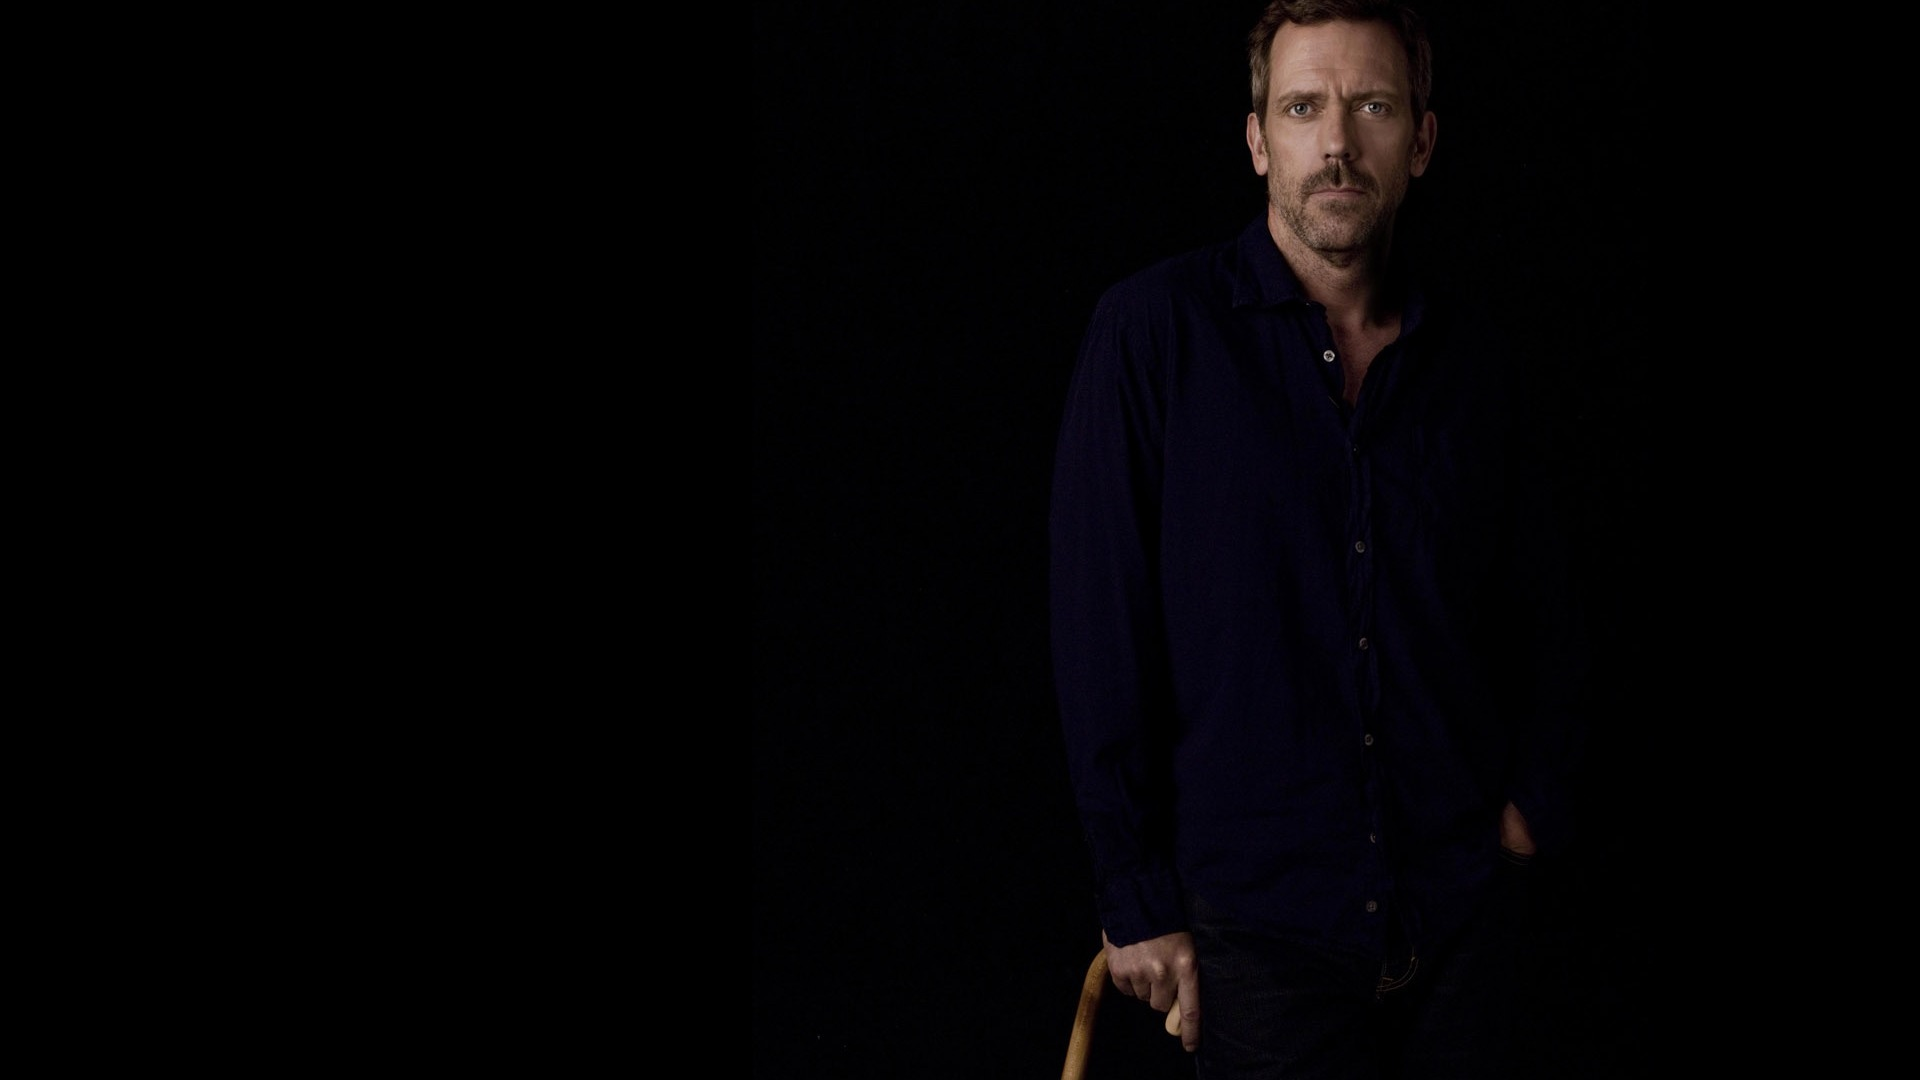 Hugh Laurie Quotes Wallpaper House M D Hd Wallpapers 17 1920x1080 Wallpaper